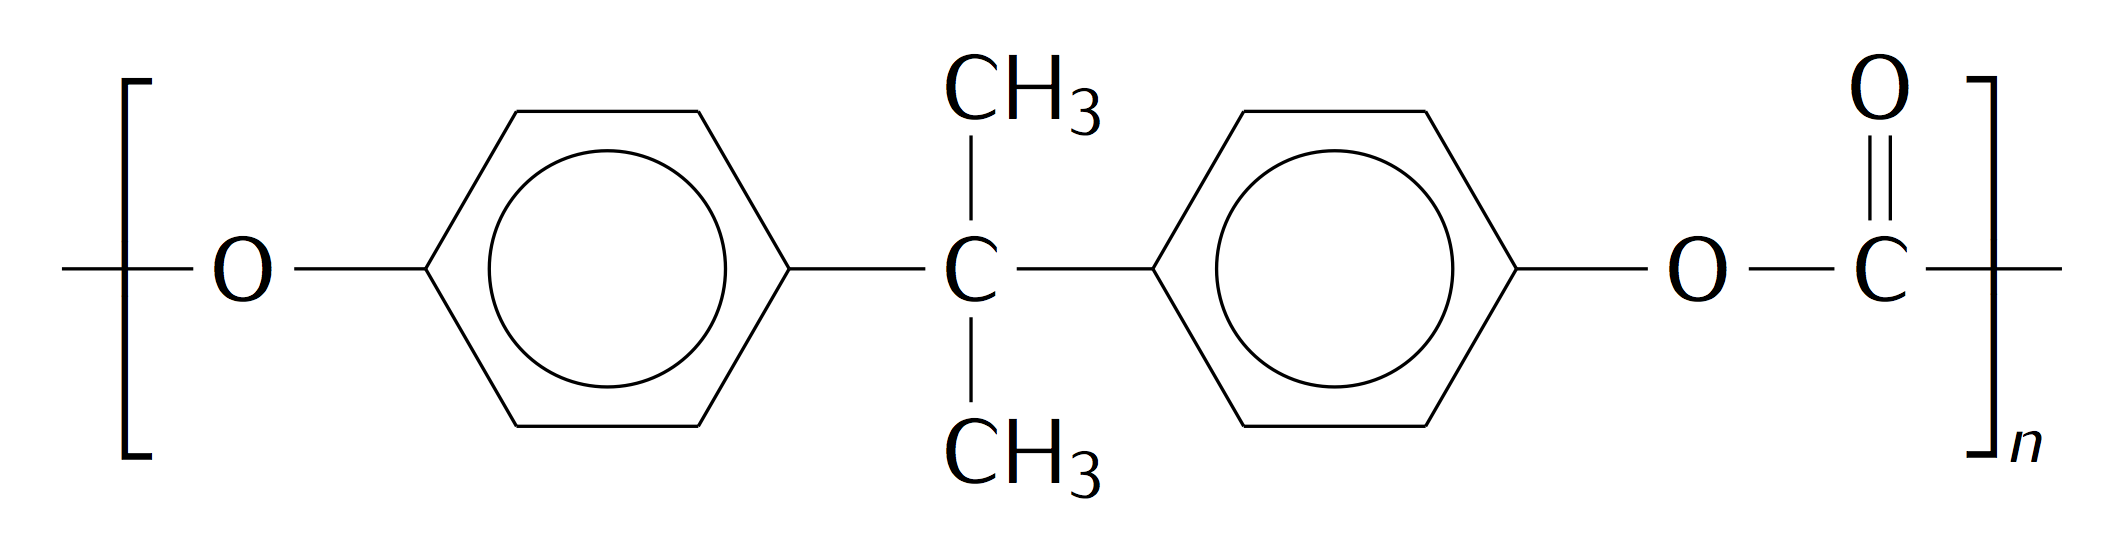 Poly(carbonate), drawn using chemfig (LaTeX)